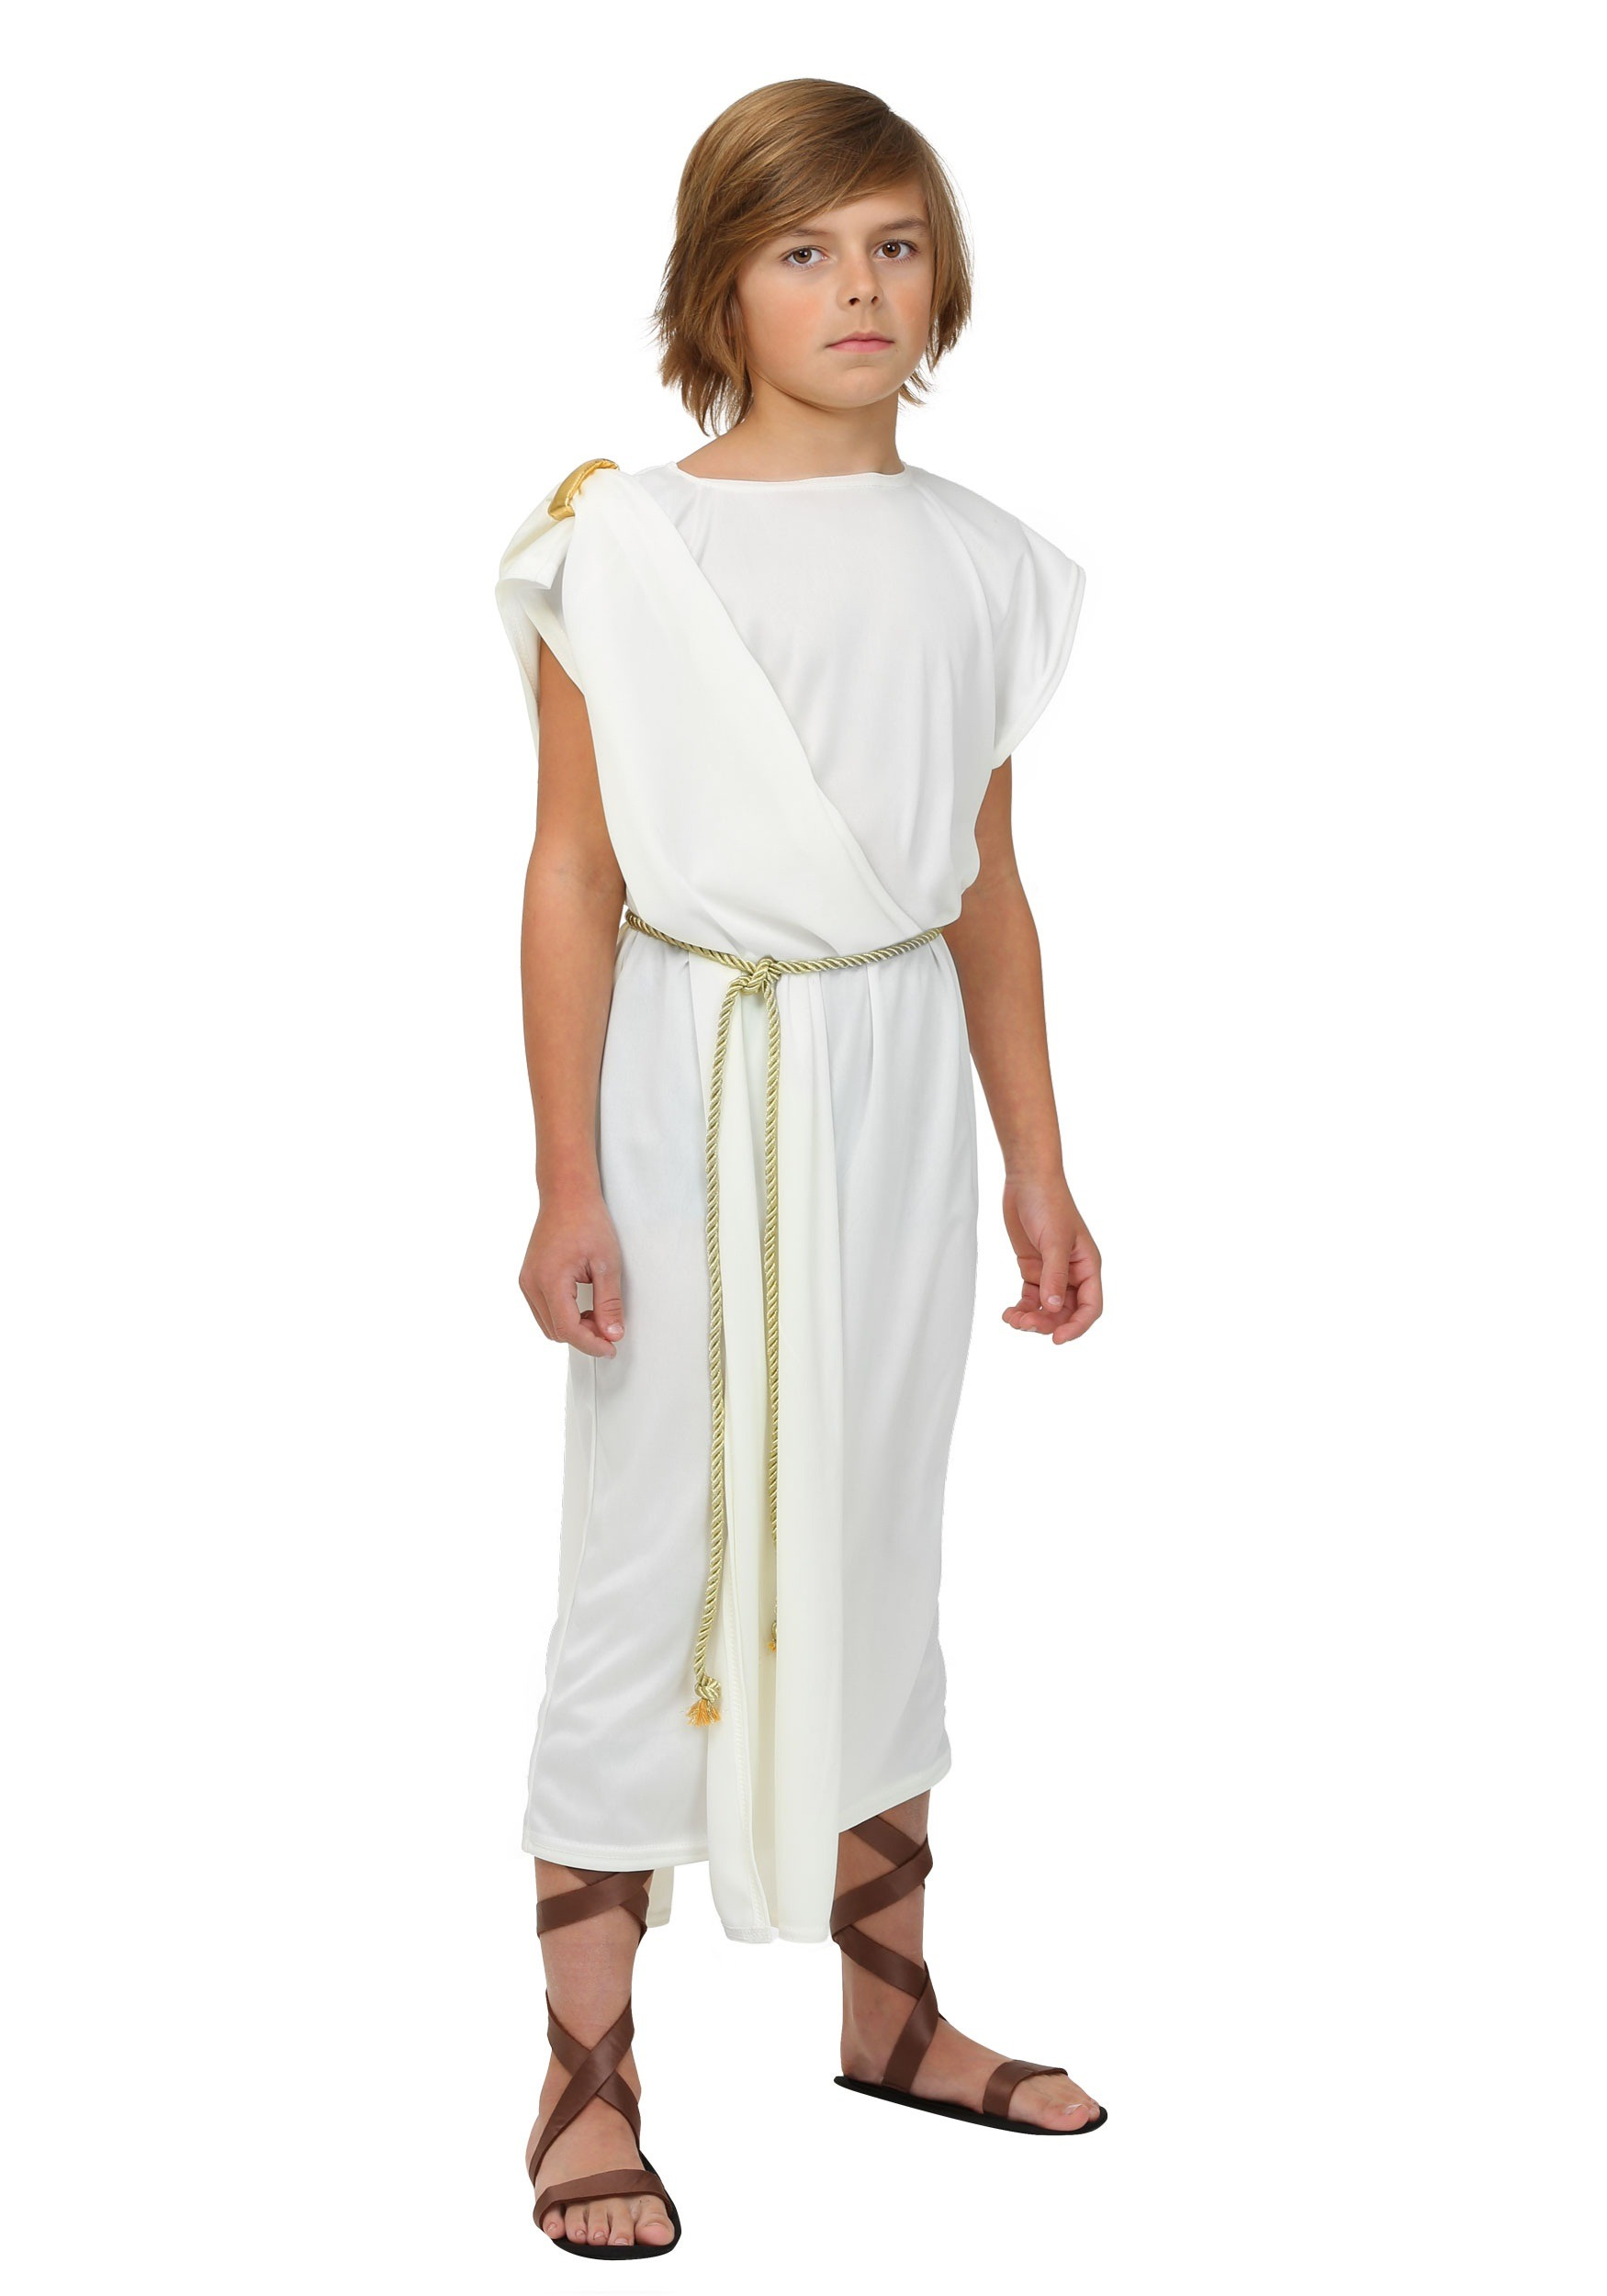 Childrens Toga Costume | Exclusive | Made By Us Costume